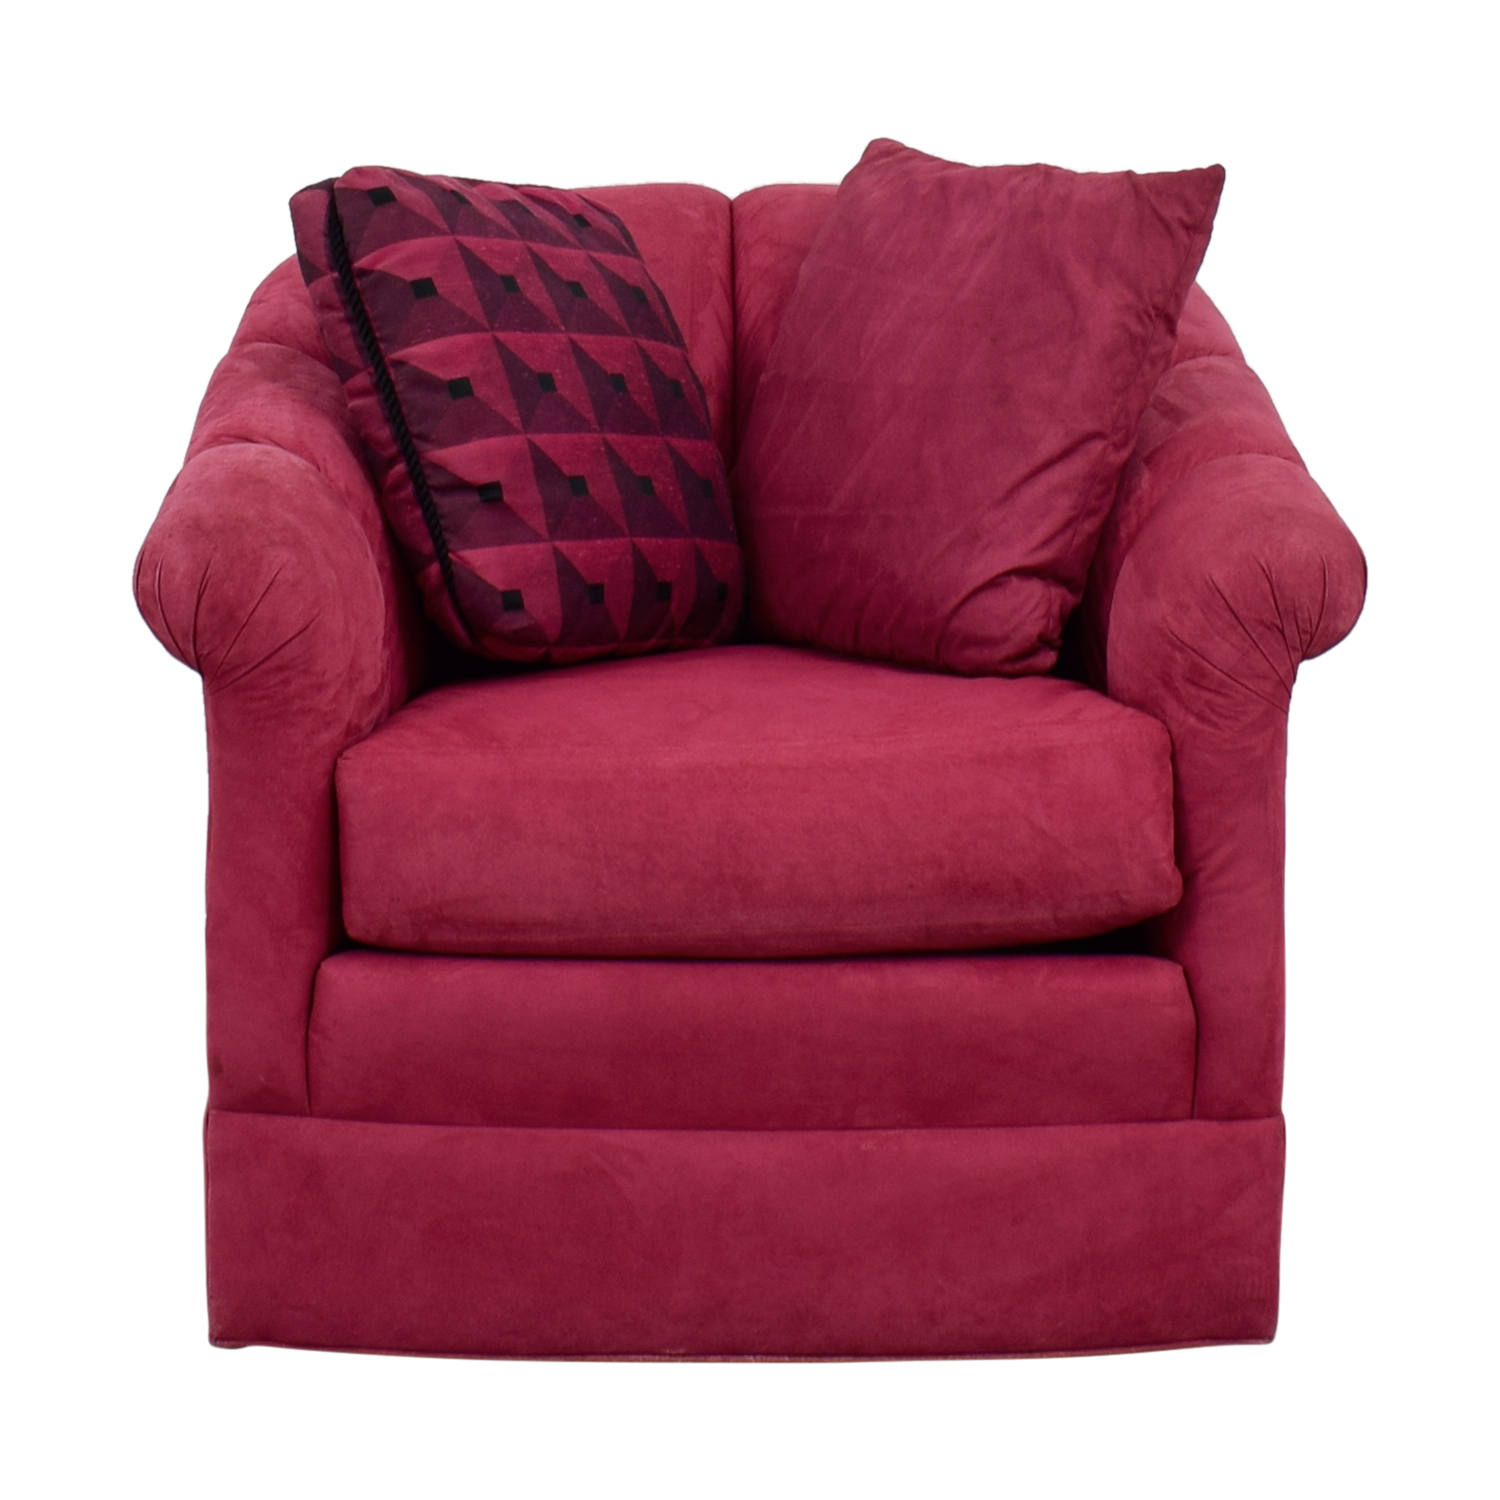 Magenta Curved Arm Accent Chair with Pillows / Chairs